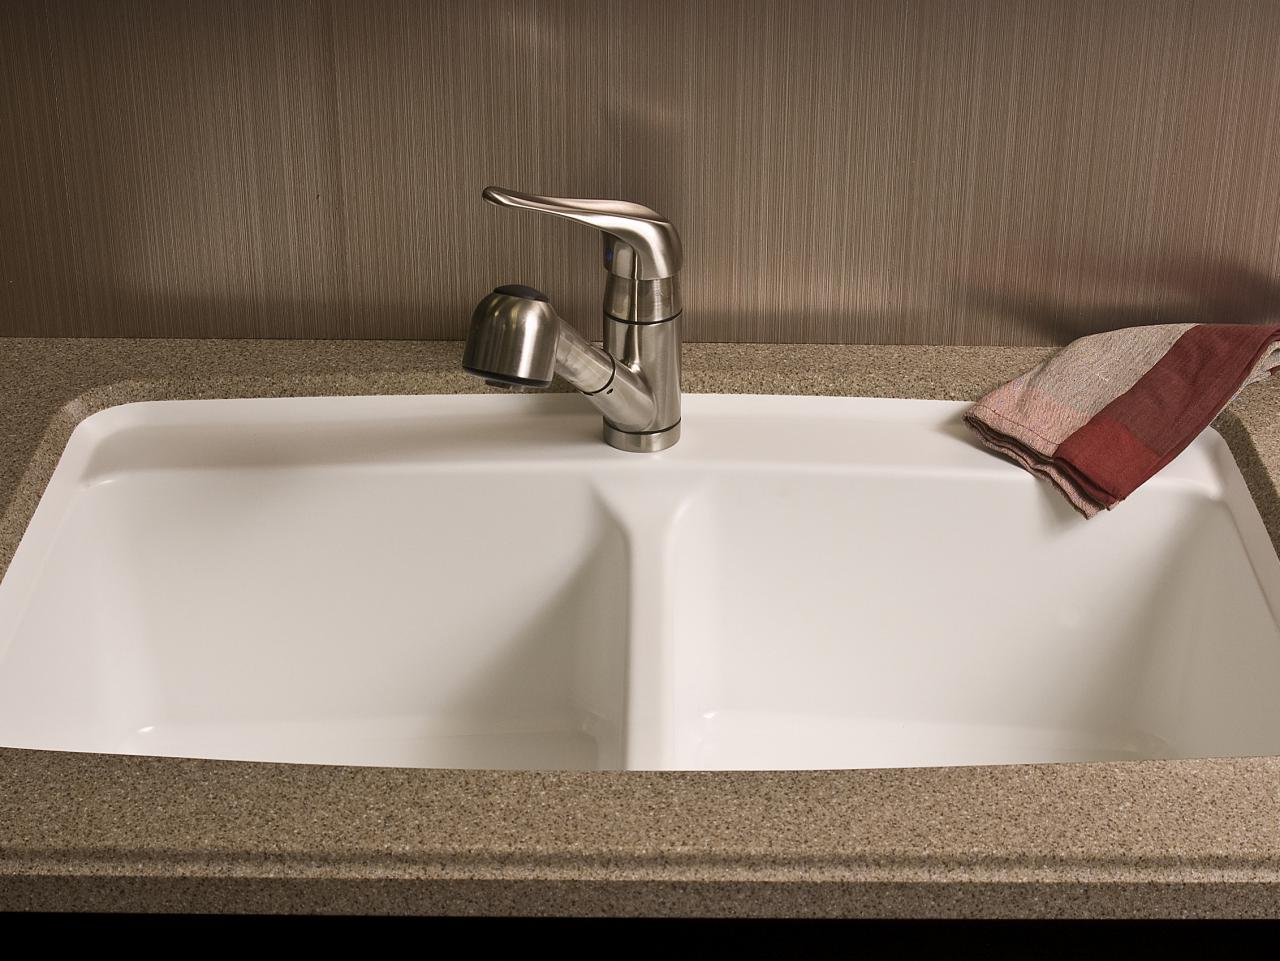 Countertop Kitchen Sink : Solid-Surface Kitchen Countertop HGTV